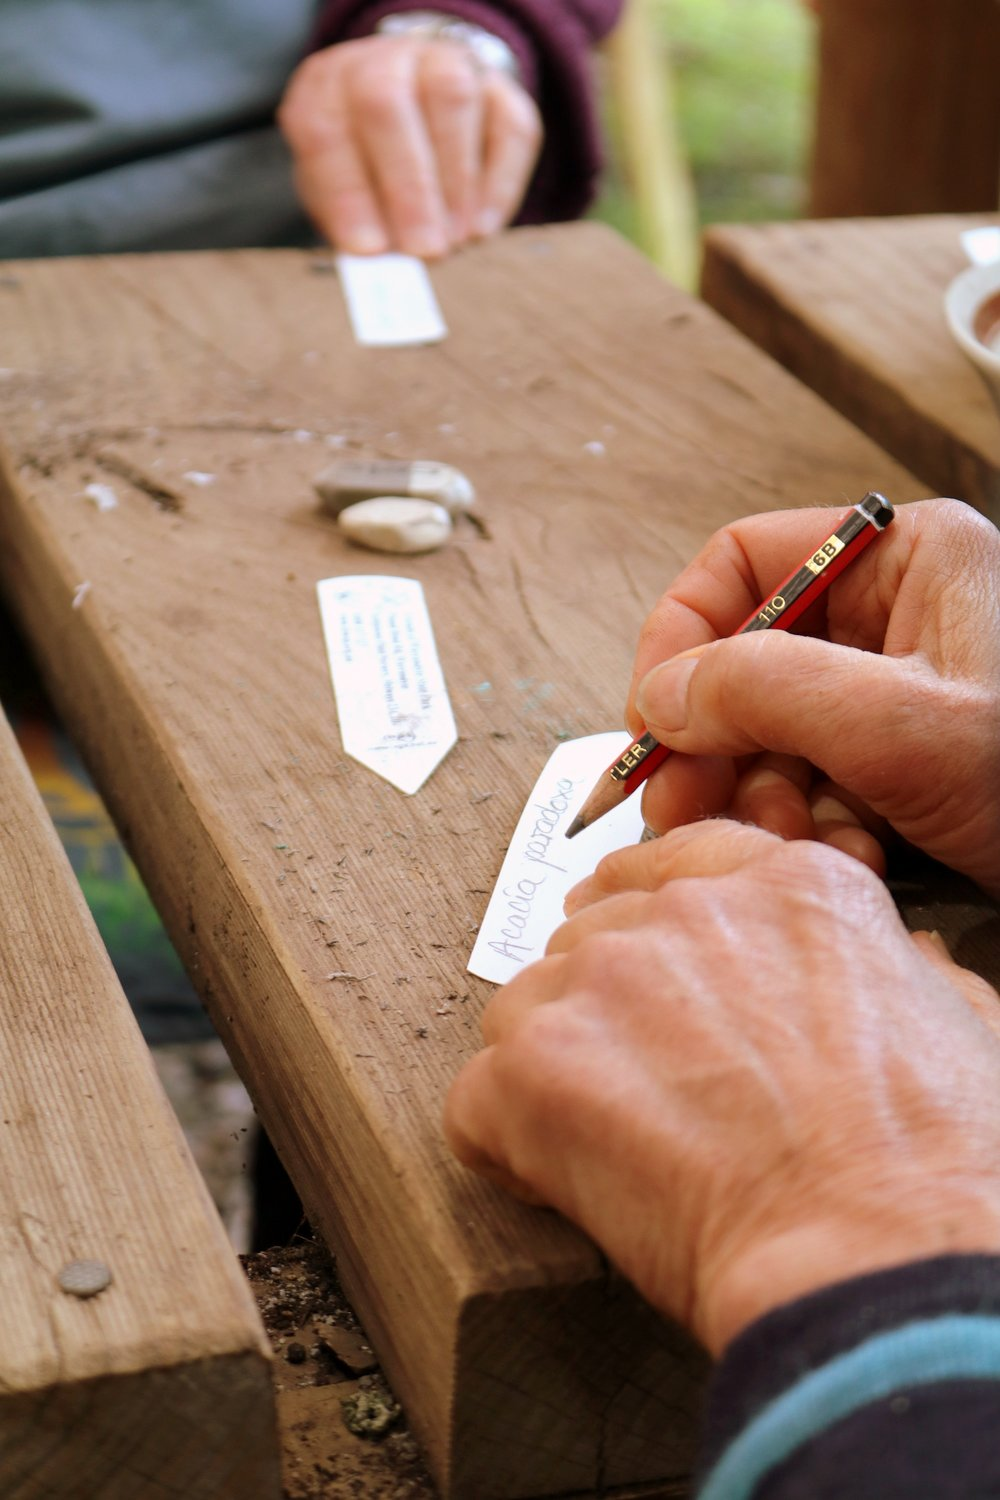 Writing plant ID tags for seedlings. Image: Leonardo Guida